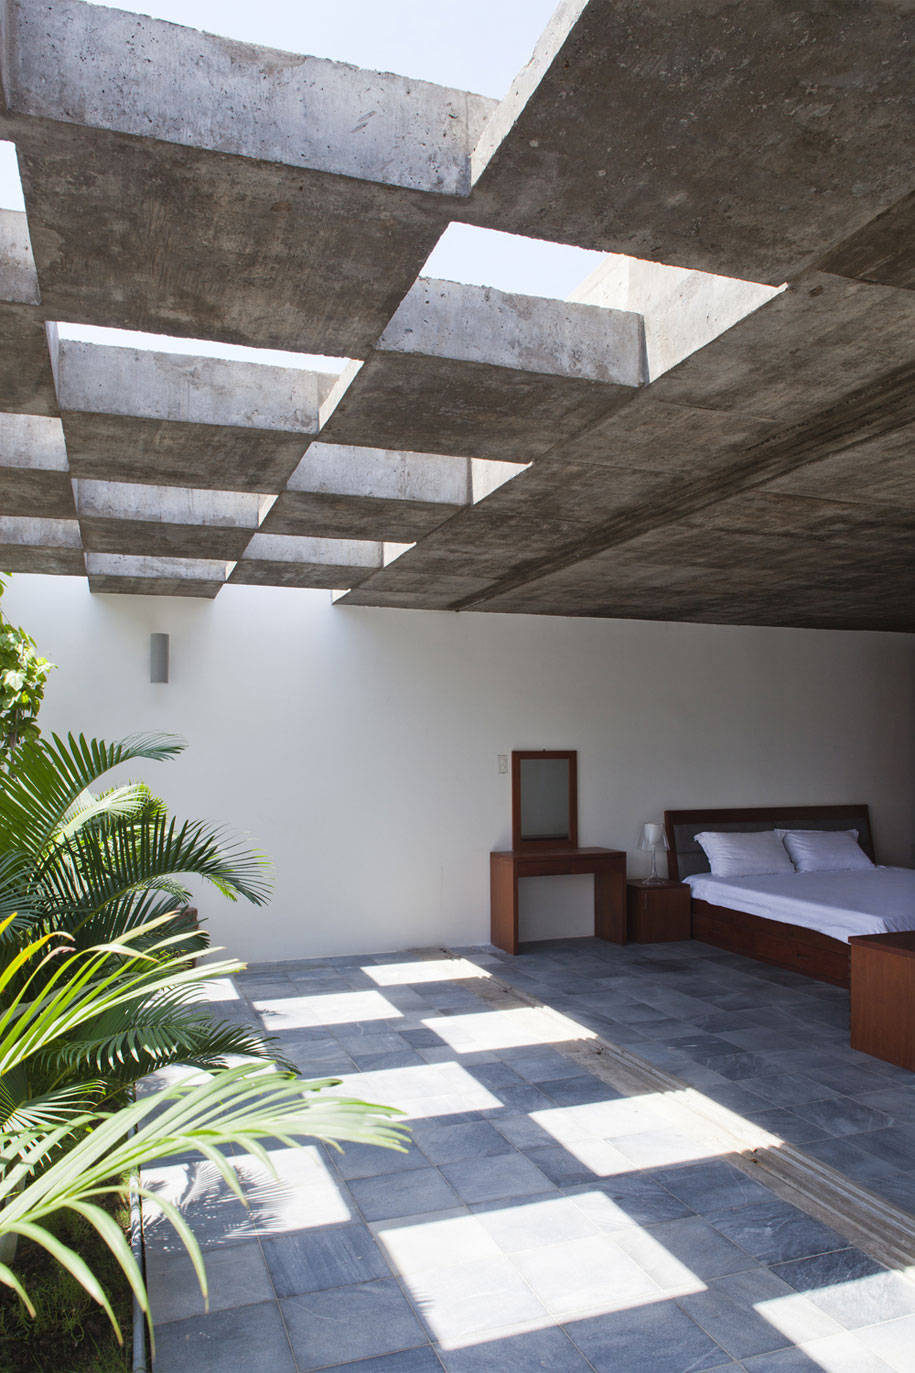 52156a65e8e44e9a45000061_binh-thanh-house-vo-trong-nghia-architects-sanuki-nishizawa-architects_pic14-5f-bedroom